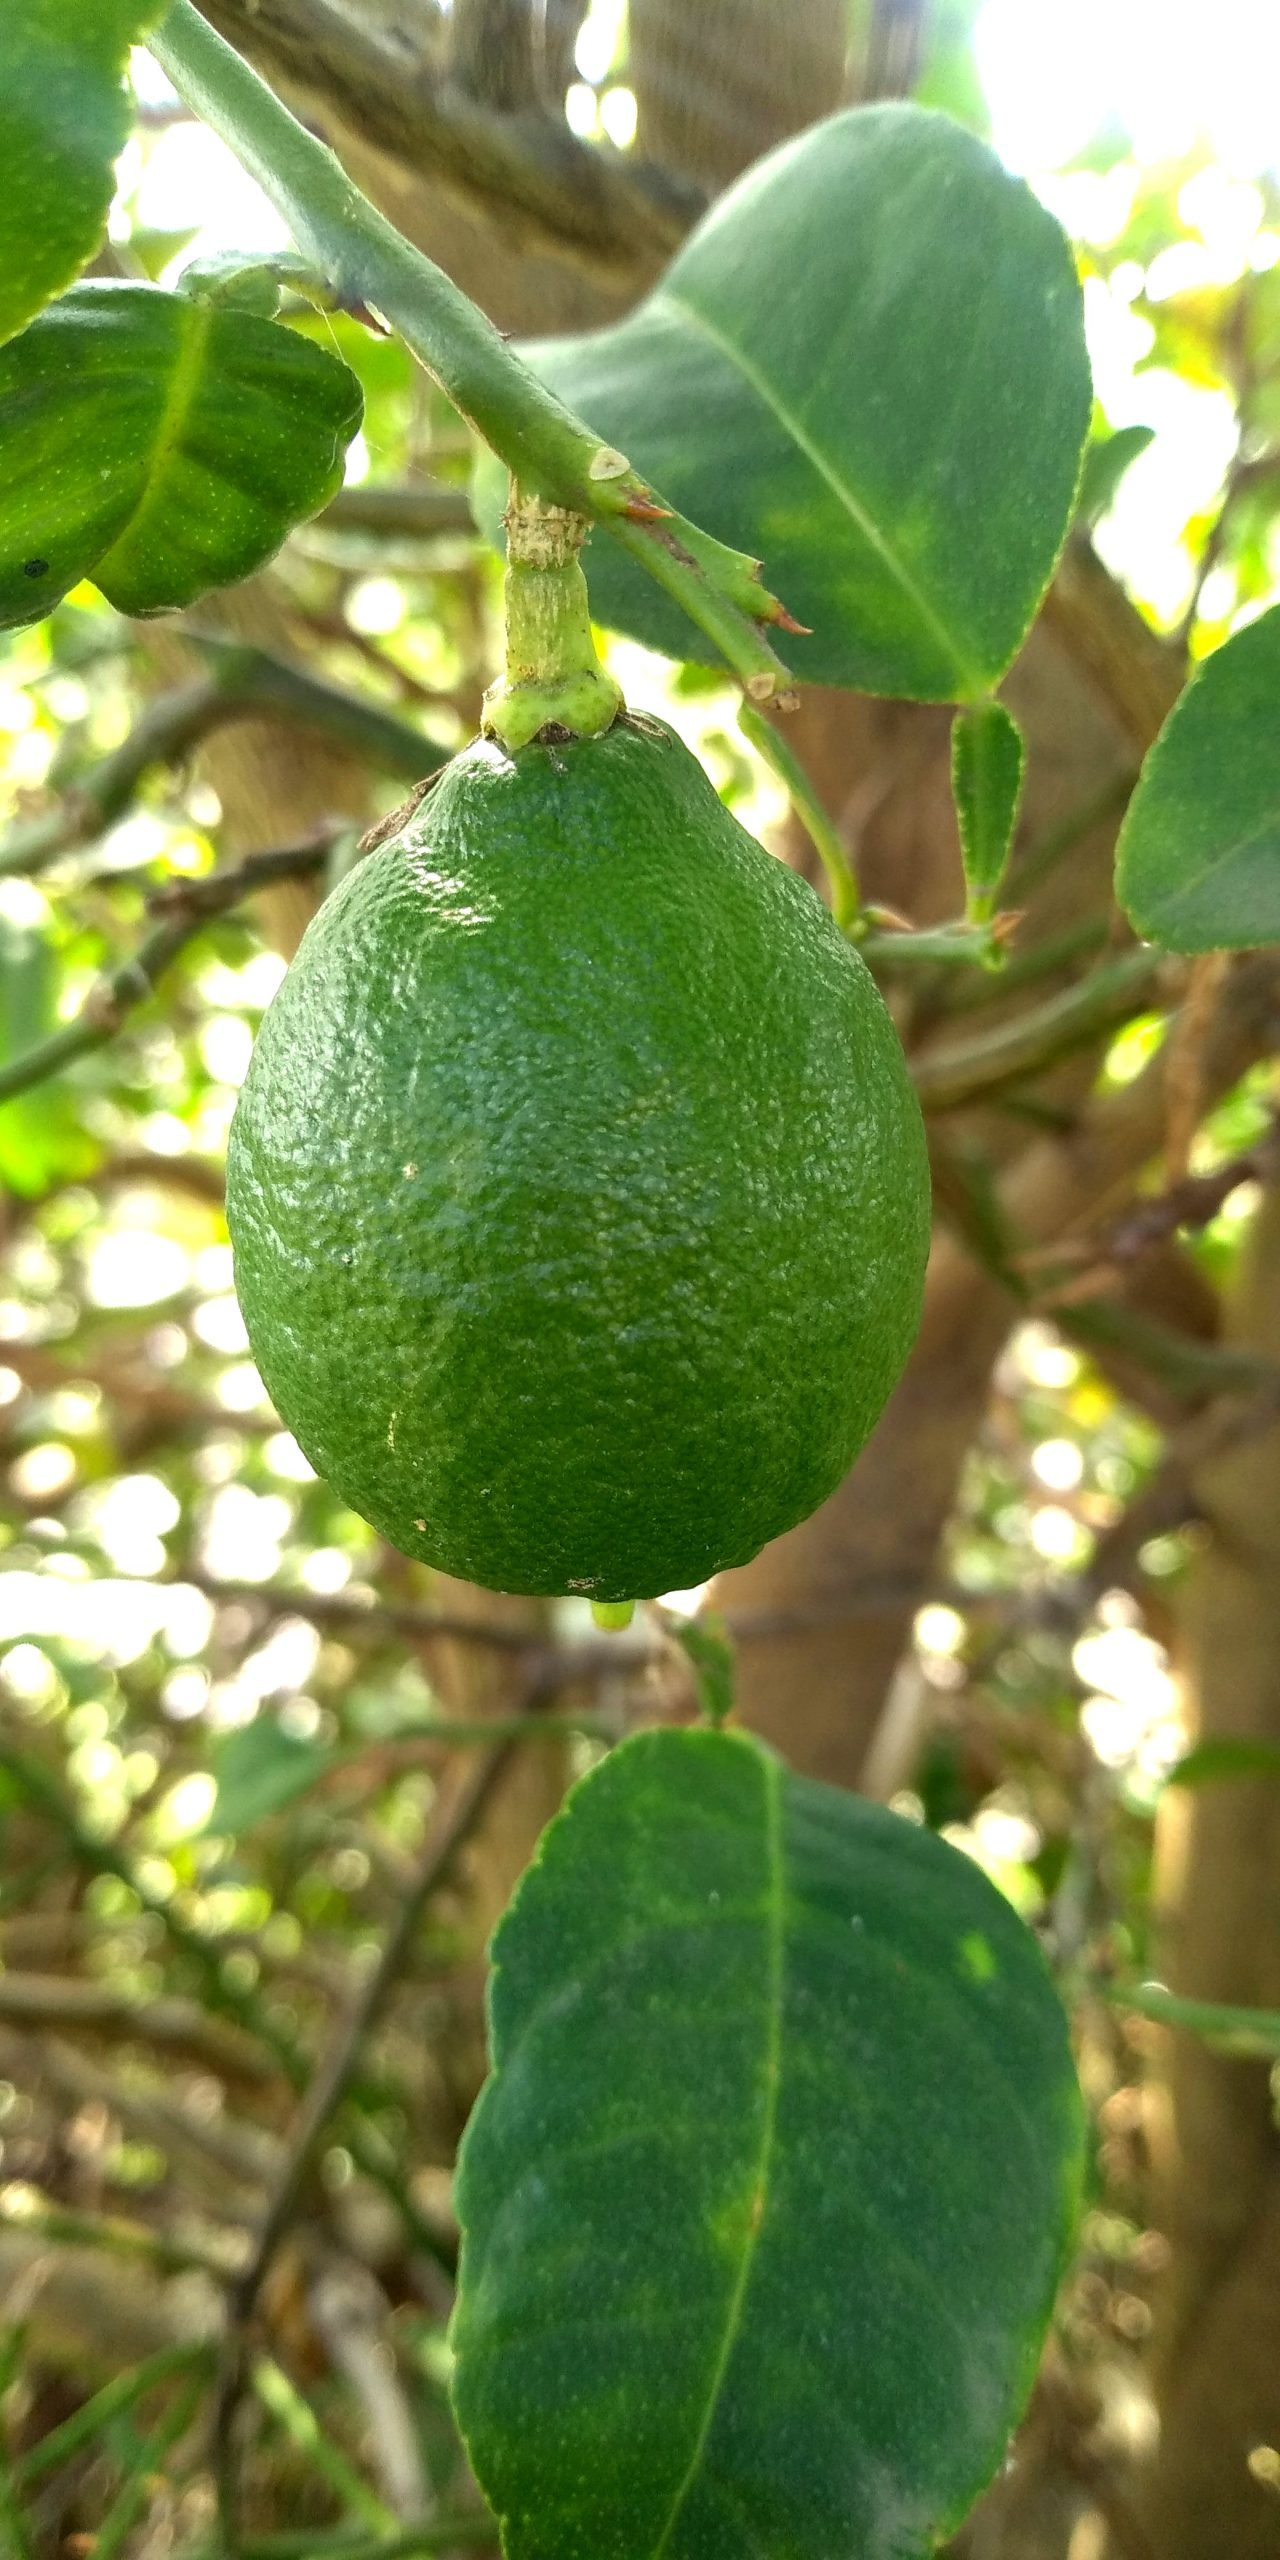 Green lemon on its tree